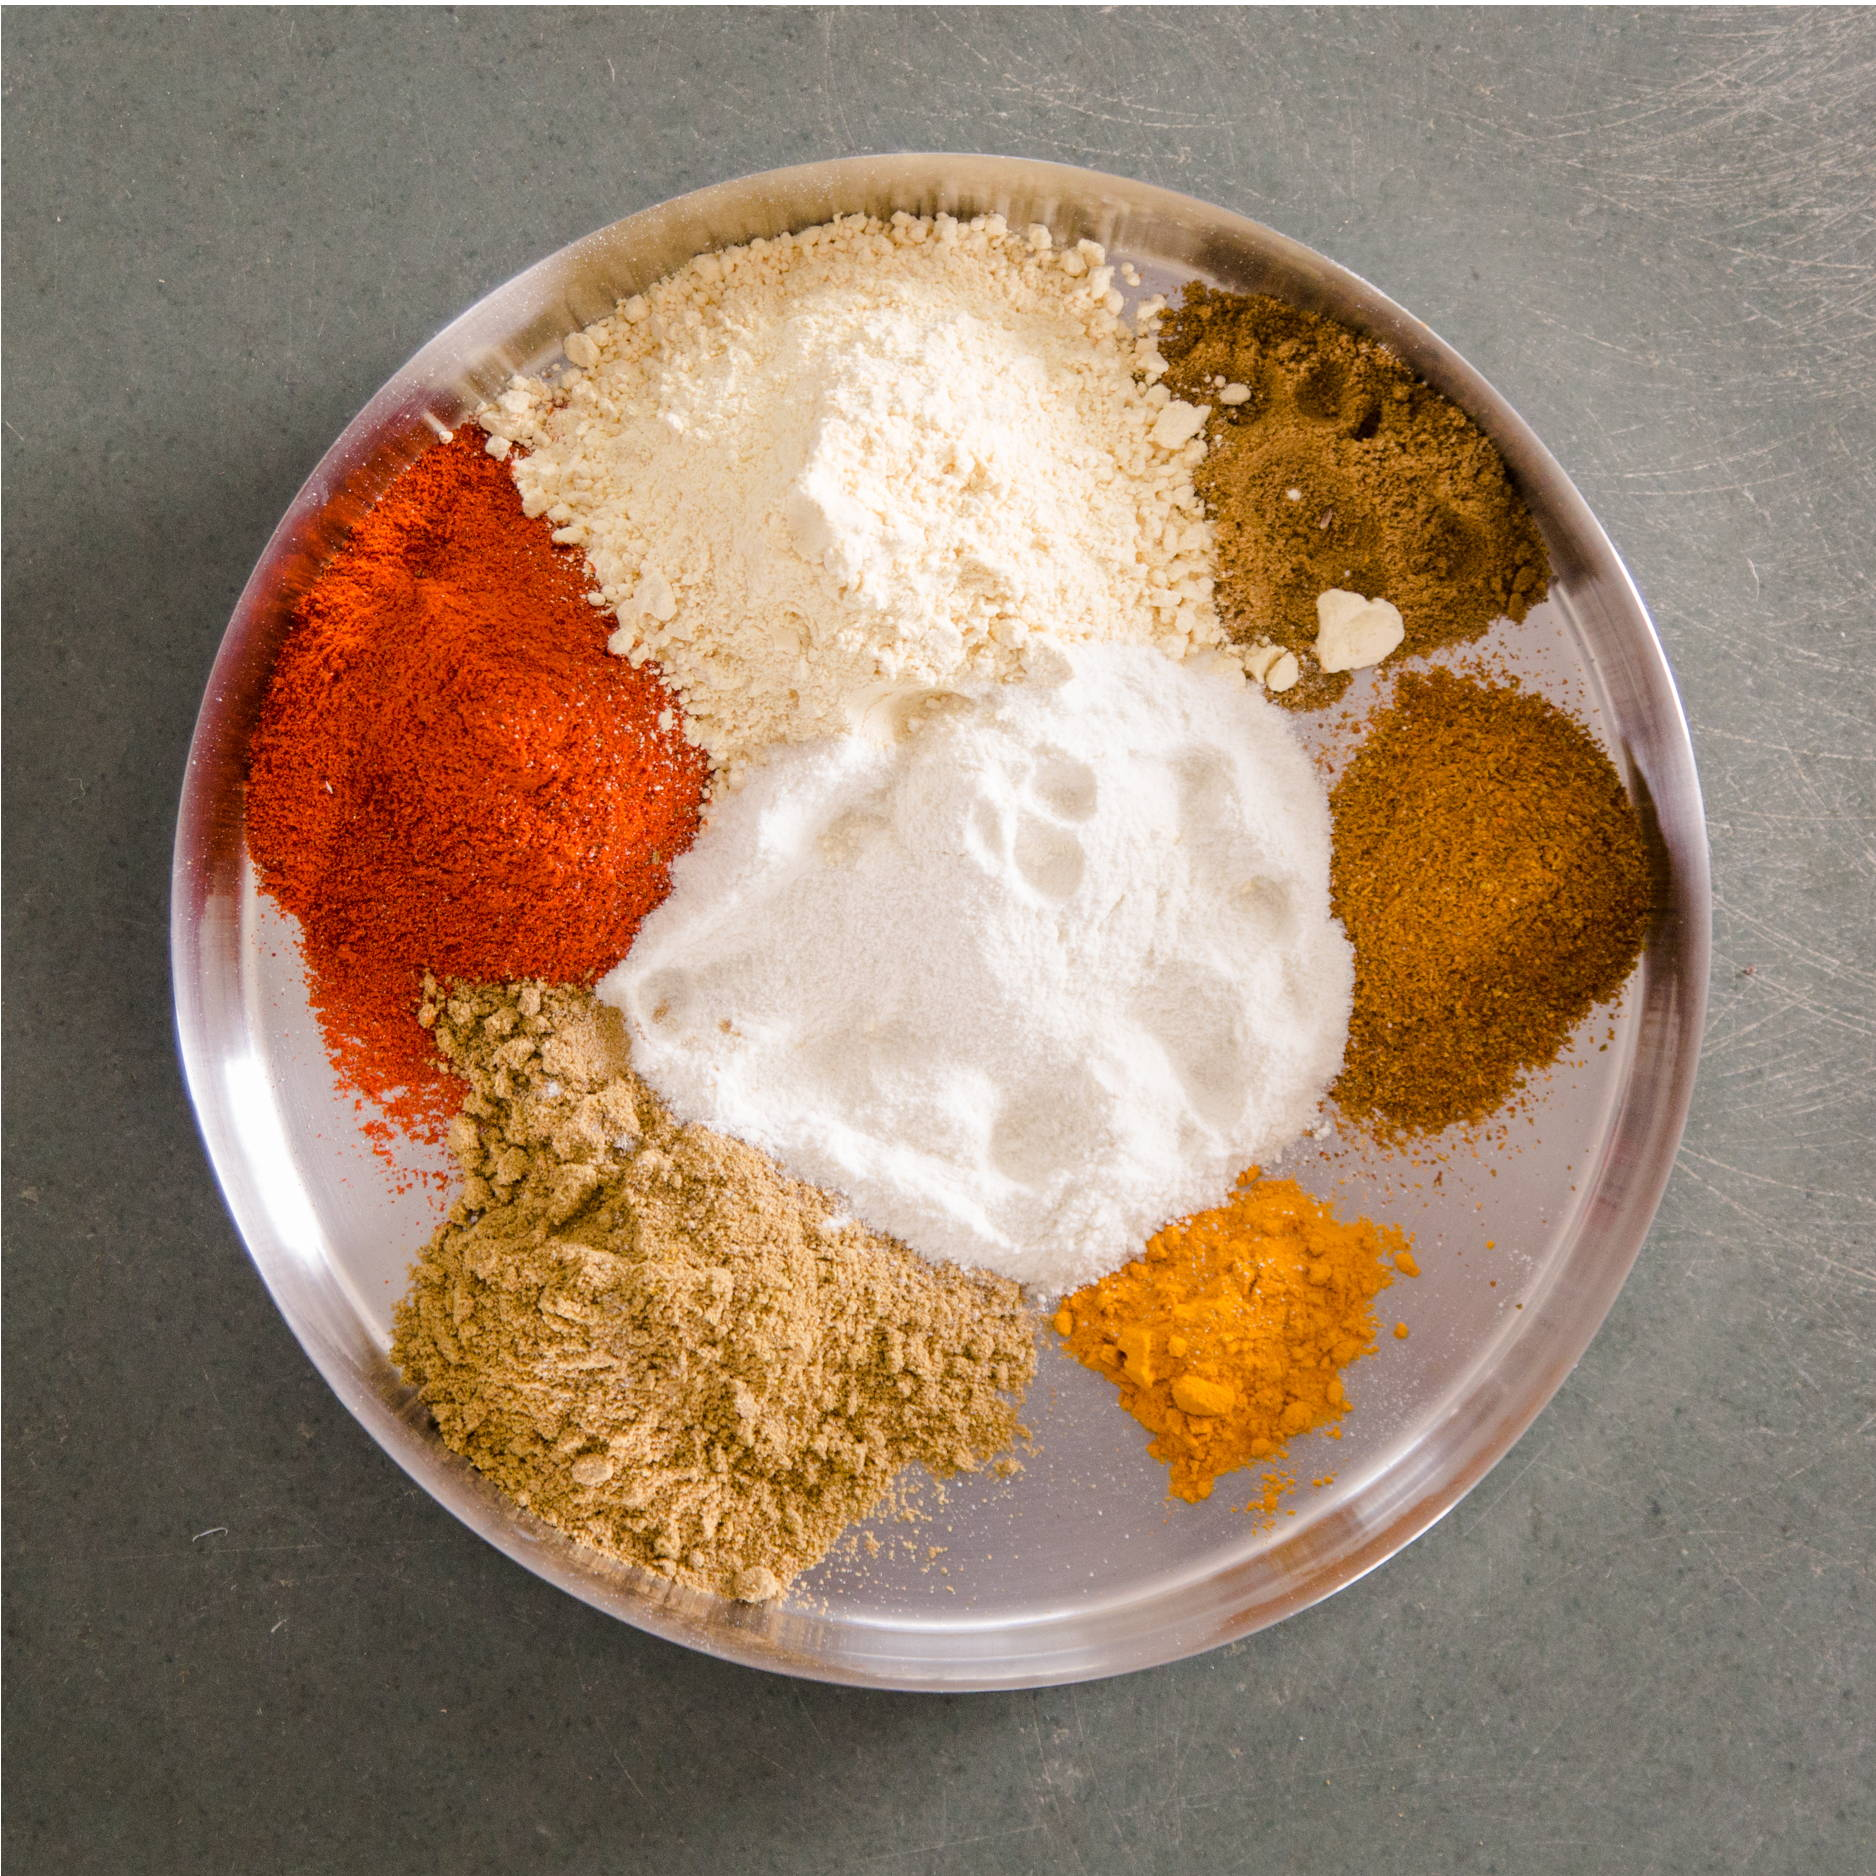 A silver plate sits on a concrete floor. It is holding piles of different Indian spices such as curry, turmeric, and cayenne.